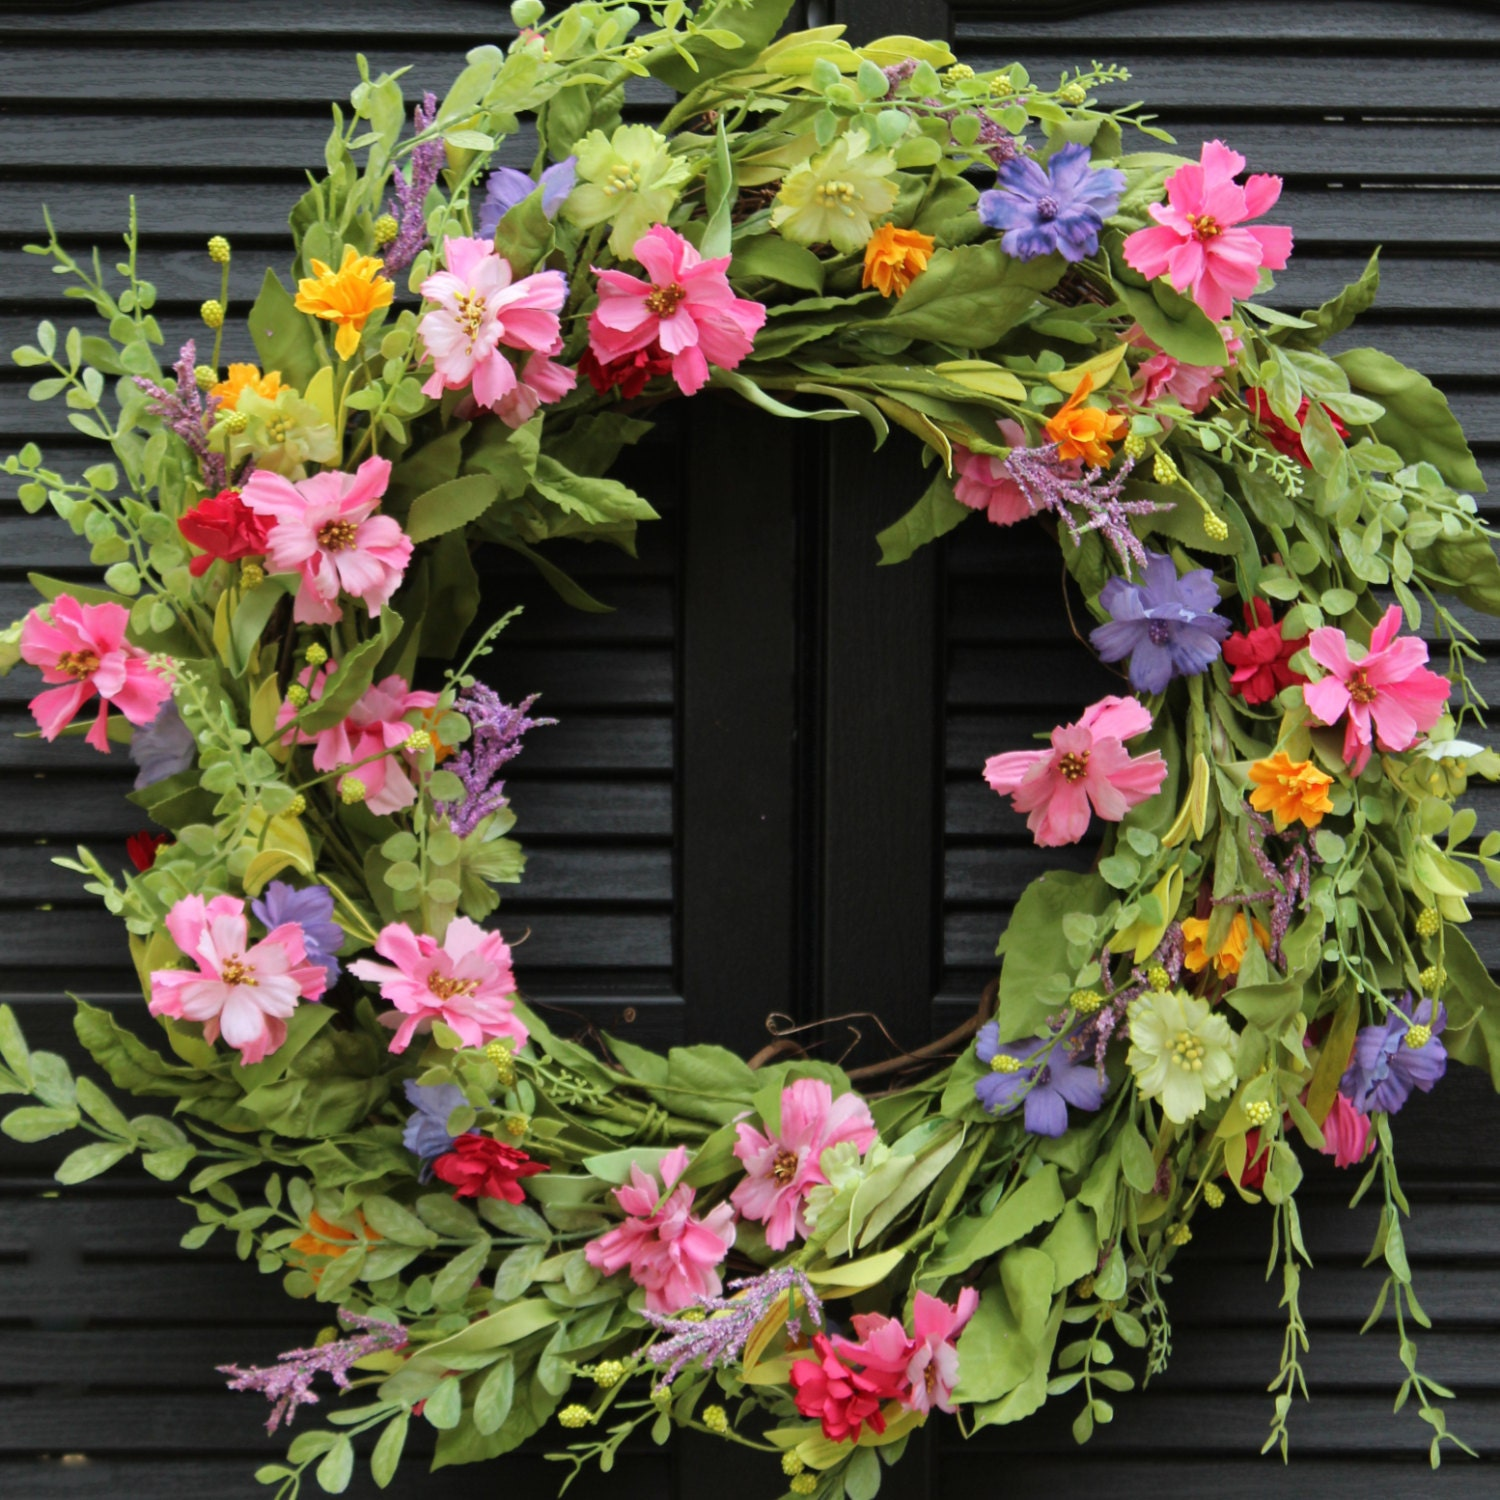 XL Spring wreath spring door wreath 29 round floral |Spring Flower Wreath